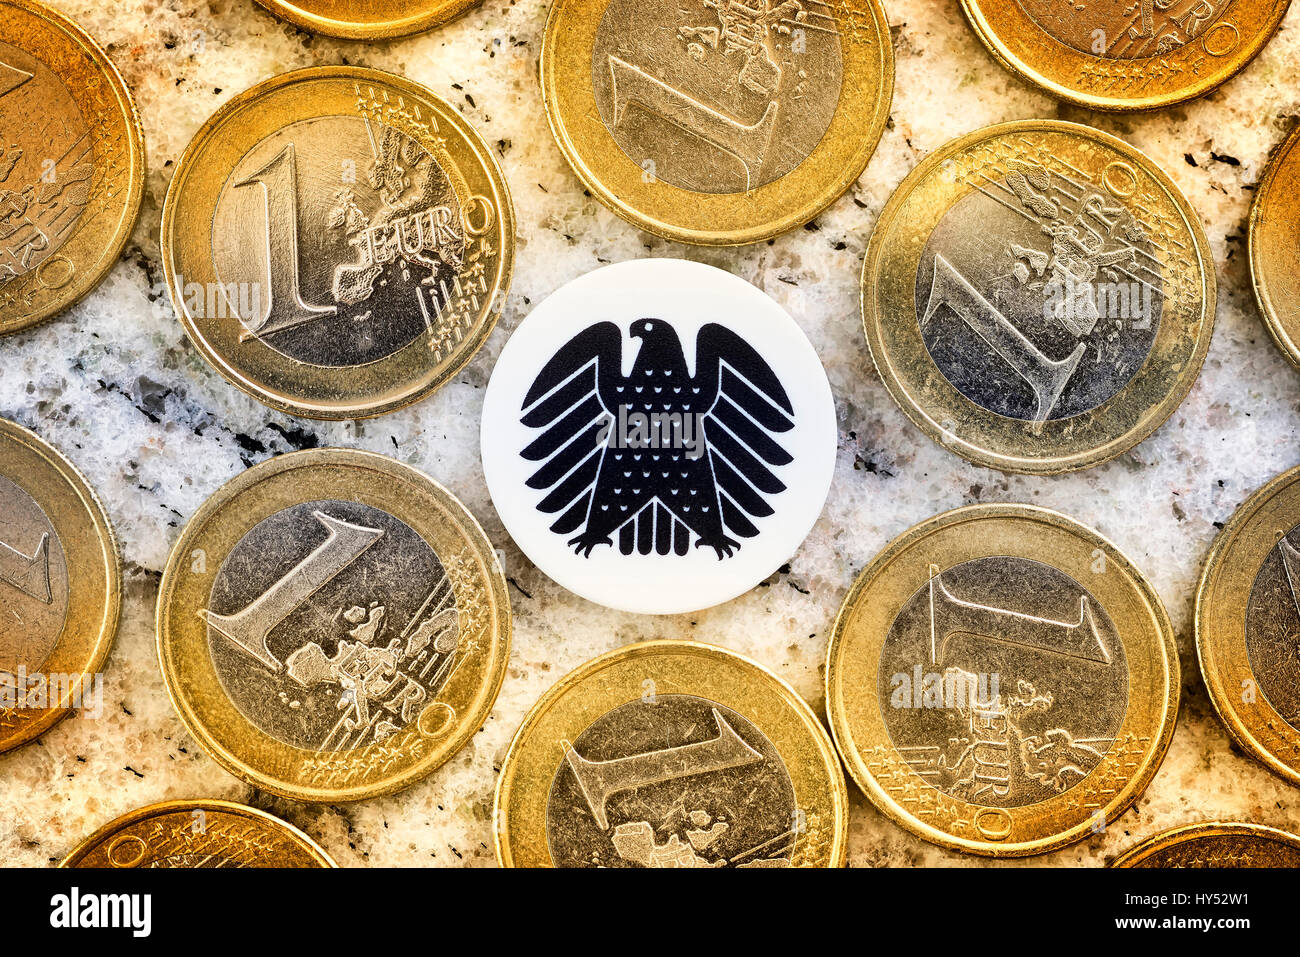 Monetary coins and federal eagles, parliamentary pay rise, Geldmuenzen und Bundesadler, Diaetenerhoehung - Stock Image